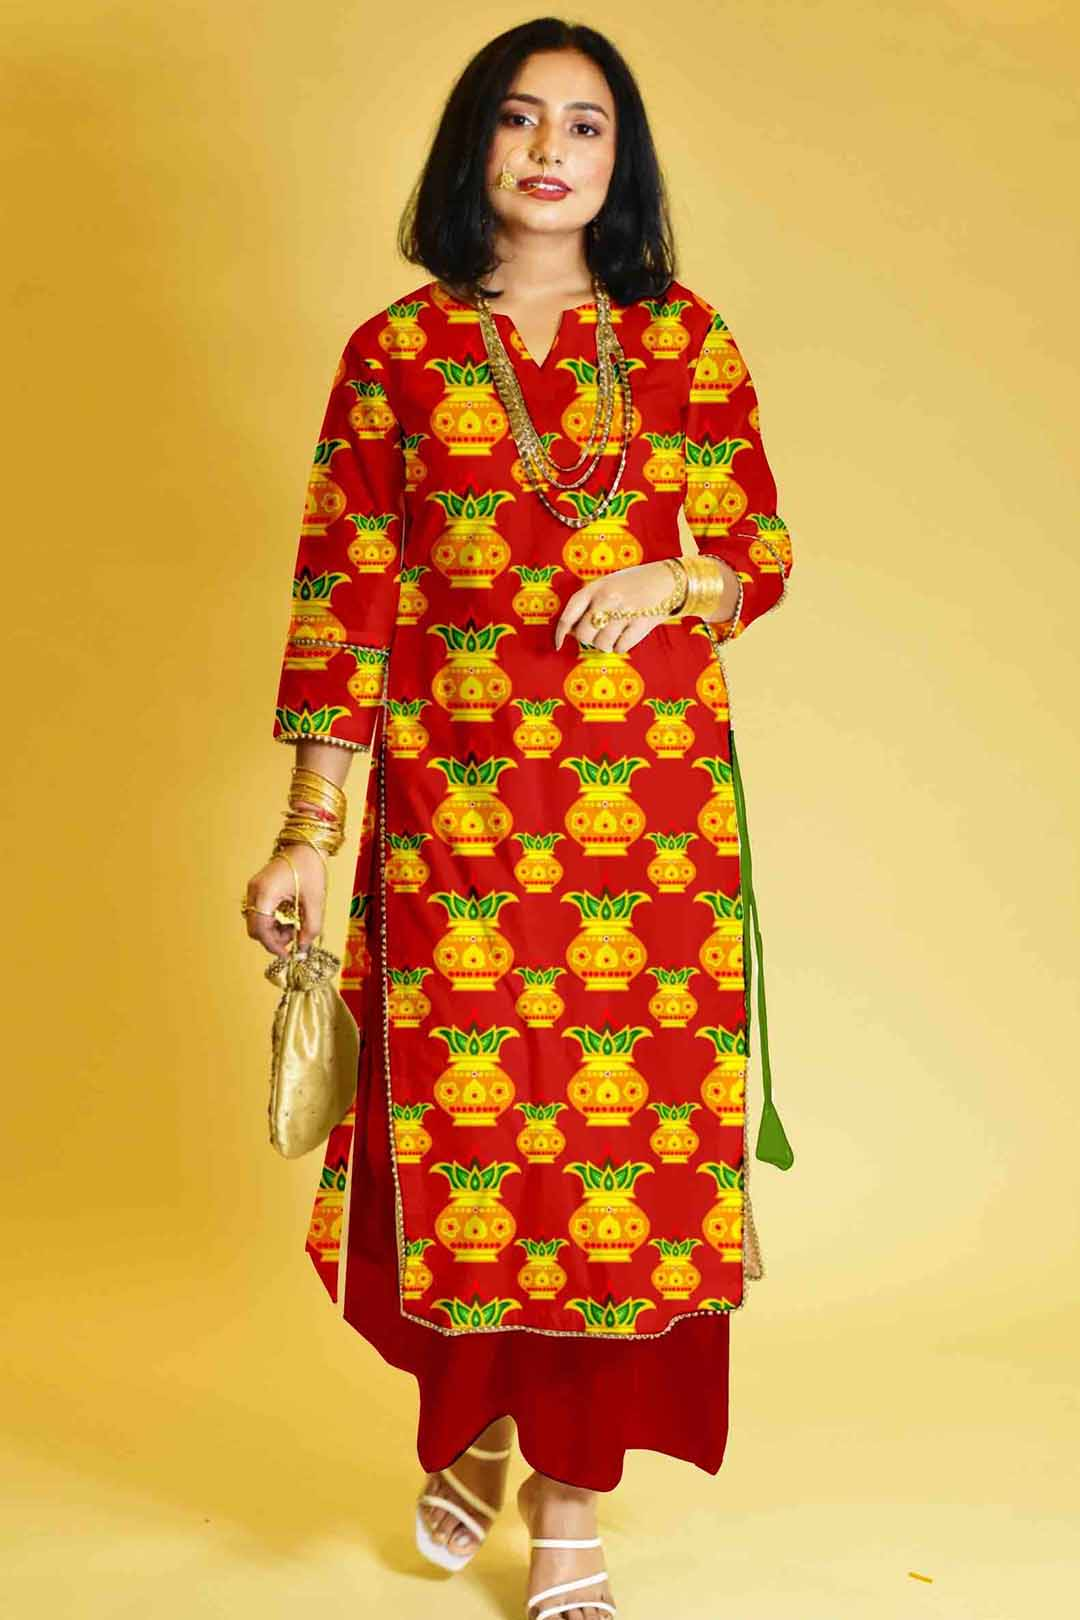 Rayon Pant Suit – The new begining